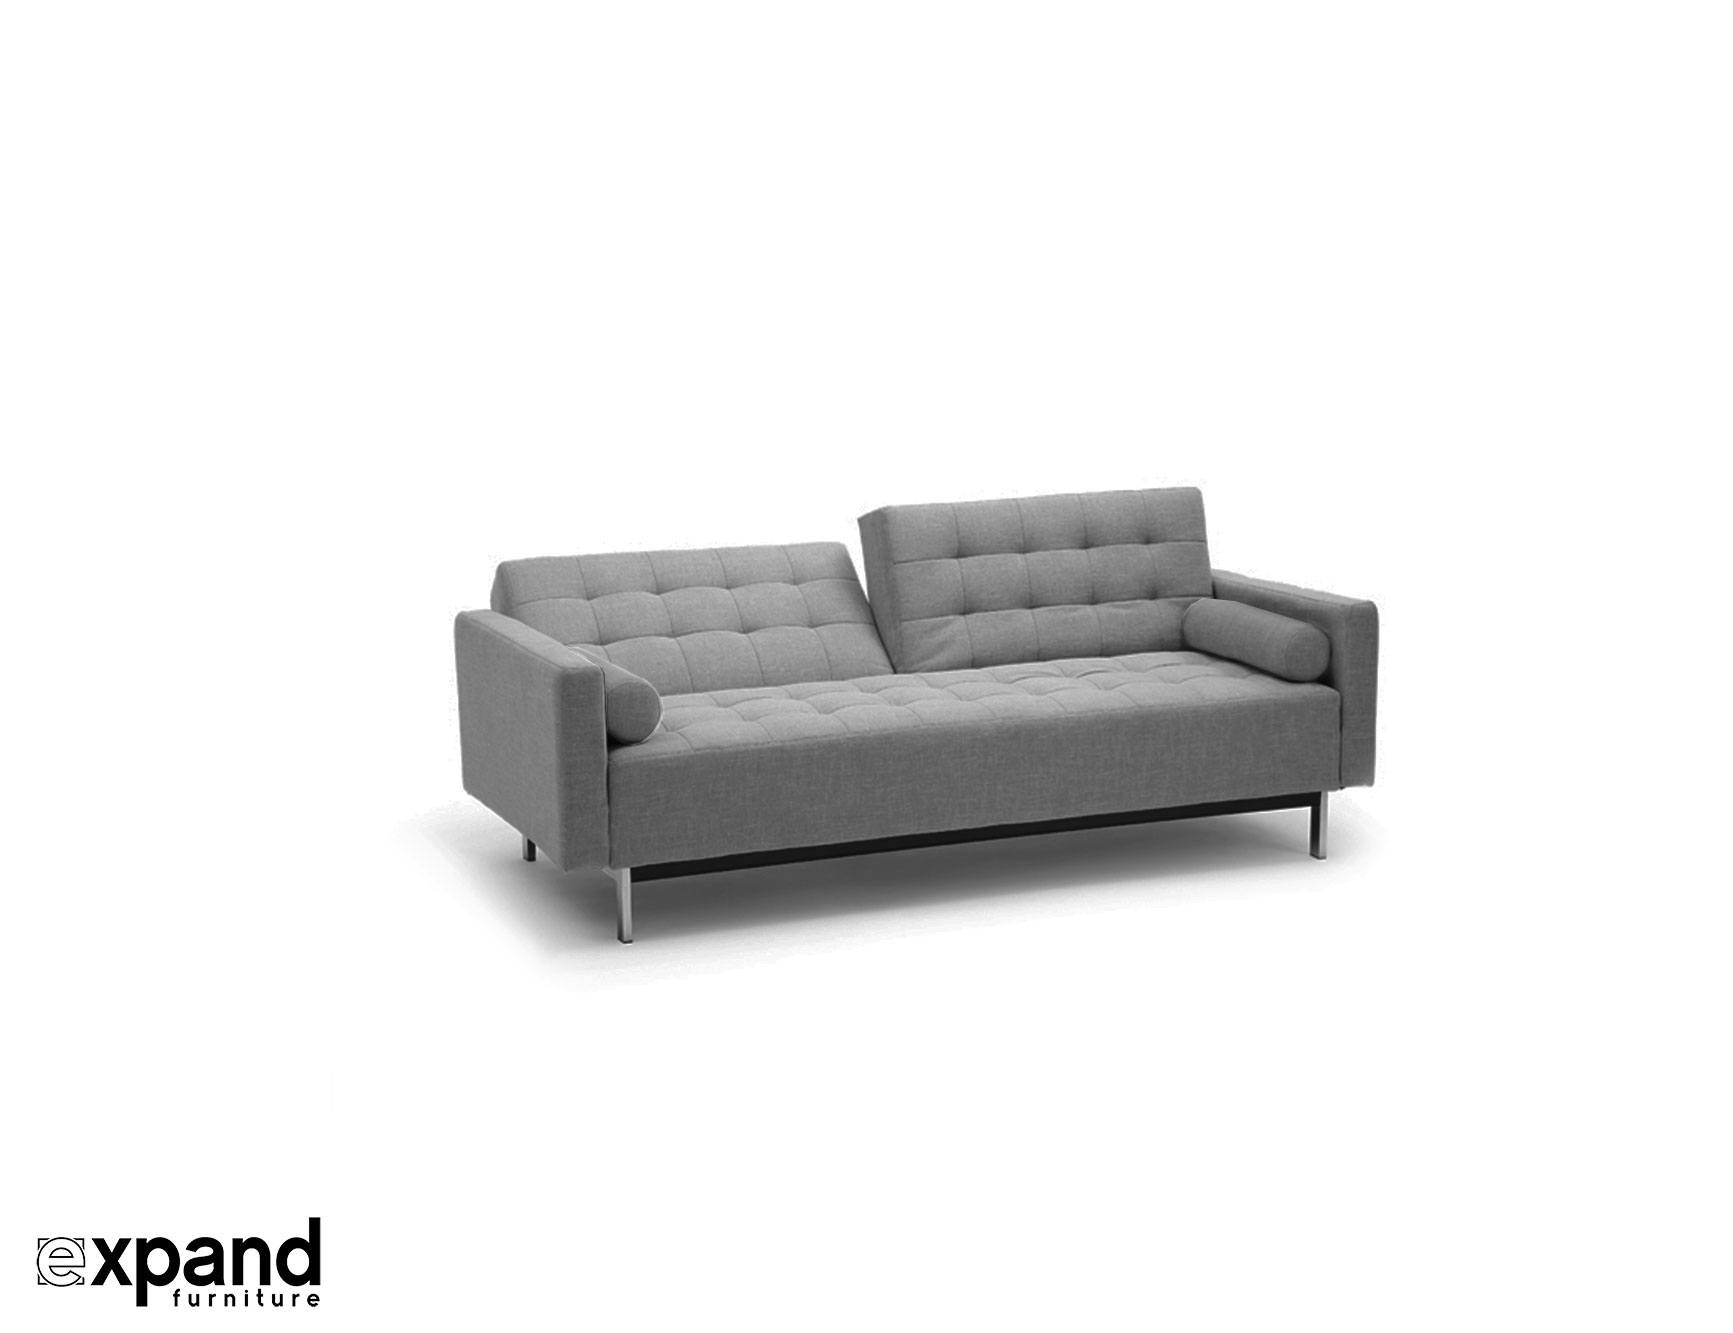 Awesome The Tilt Sofa Bed With Tufted Upholstery Cjindustries Chair Design For Home Cjindustriesco